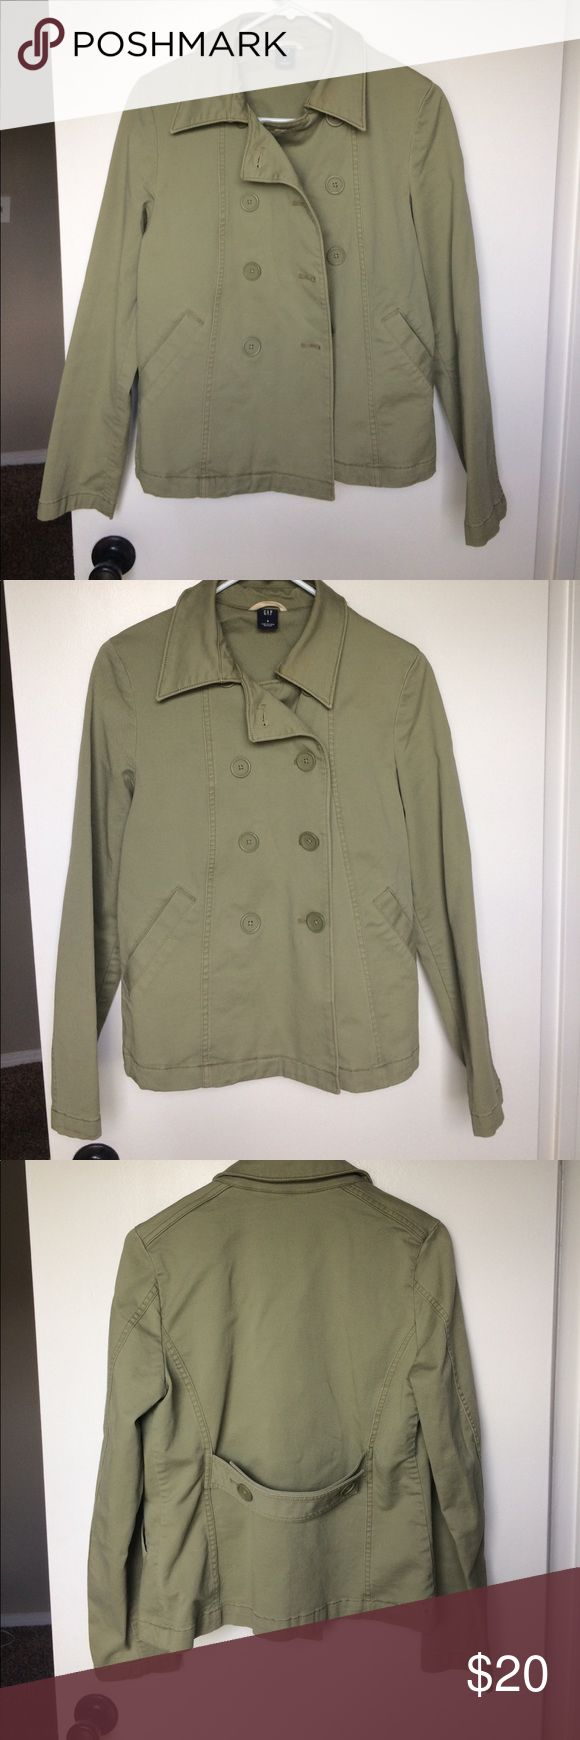 Gap olive green jacket Olive green jacket size 6. EUC. This jacket fits so nicely and is super cute on! Only worn a handful of times and has been kept hanging in a closet for the past couple years (too small for me now ☹️). Only flaw is a light stain on the collar, as seen in the last picture, but you could probably work it out with some stain remover. Smoke free and pet free home. GAP Jackets & Coats Utility Jackets